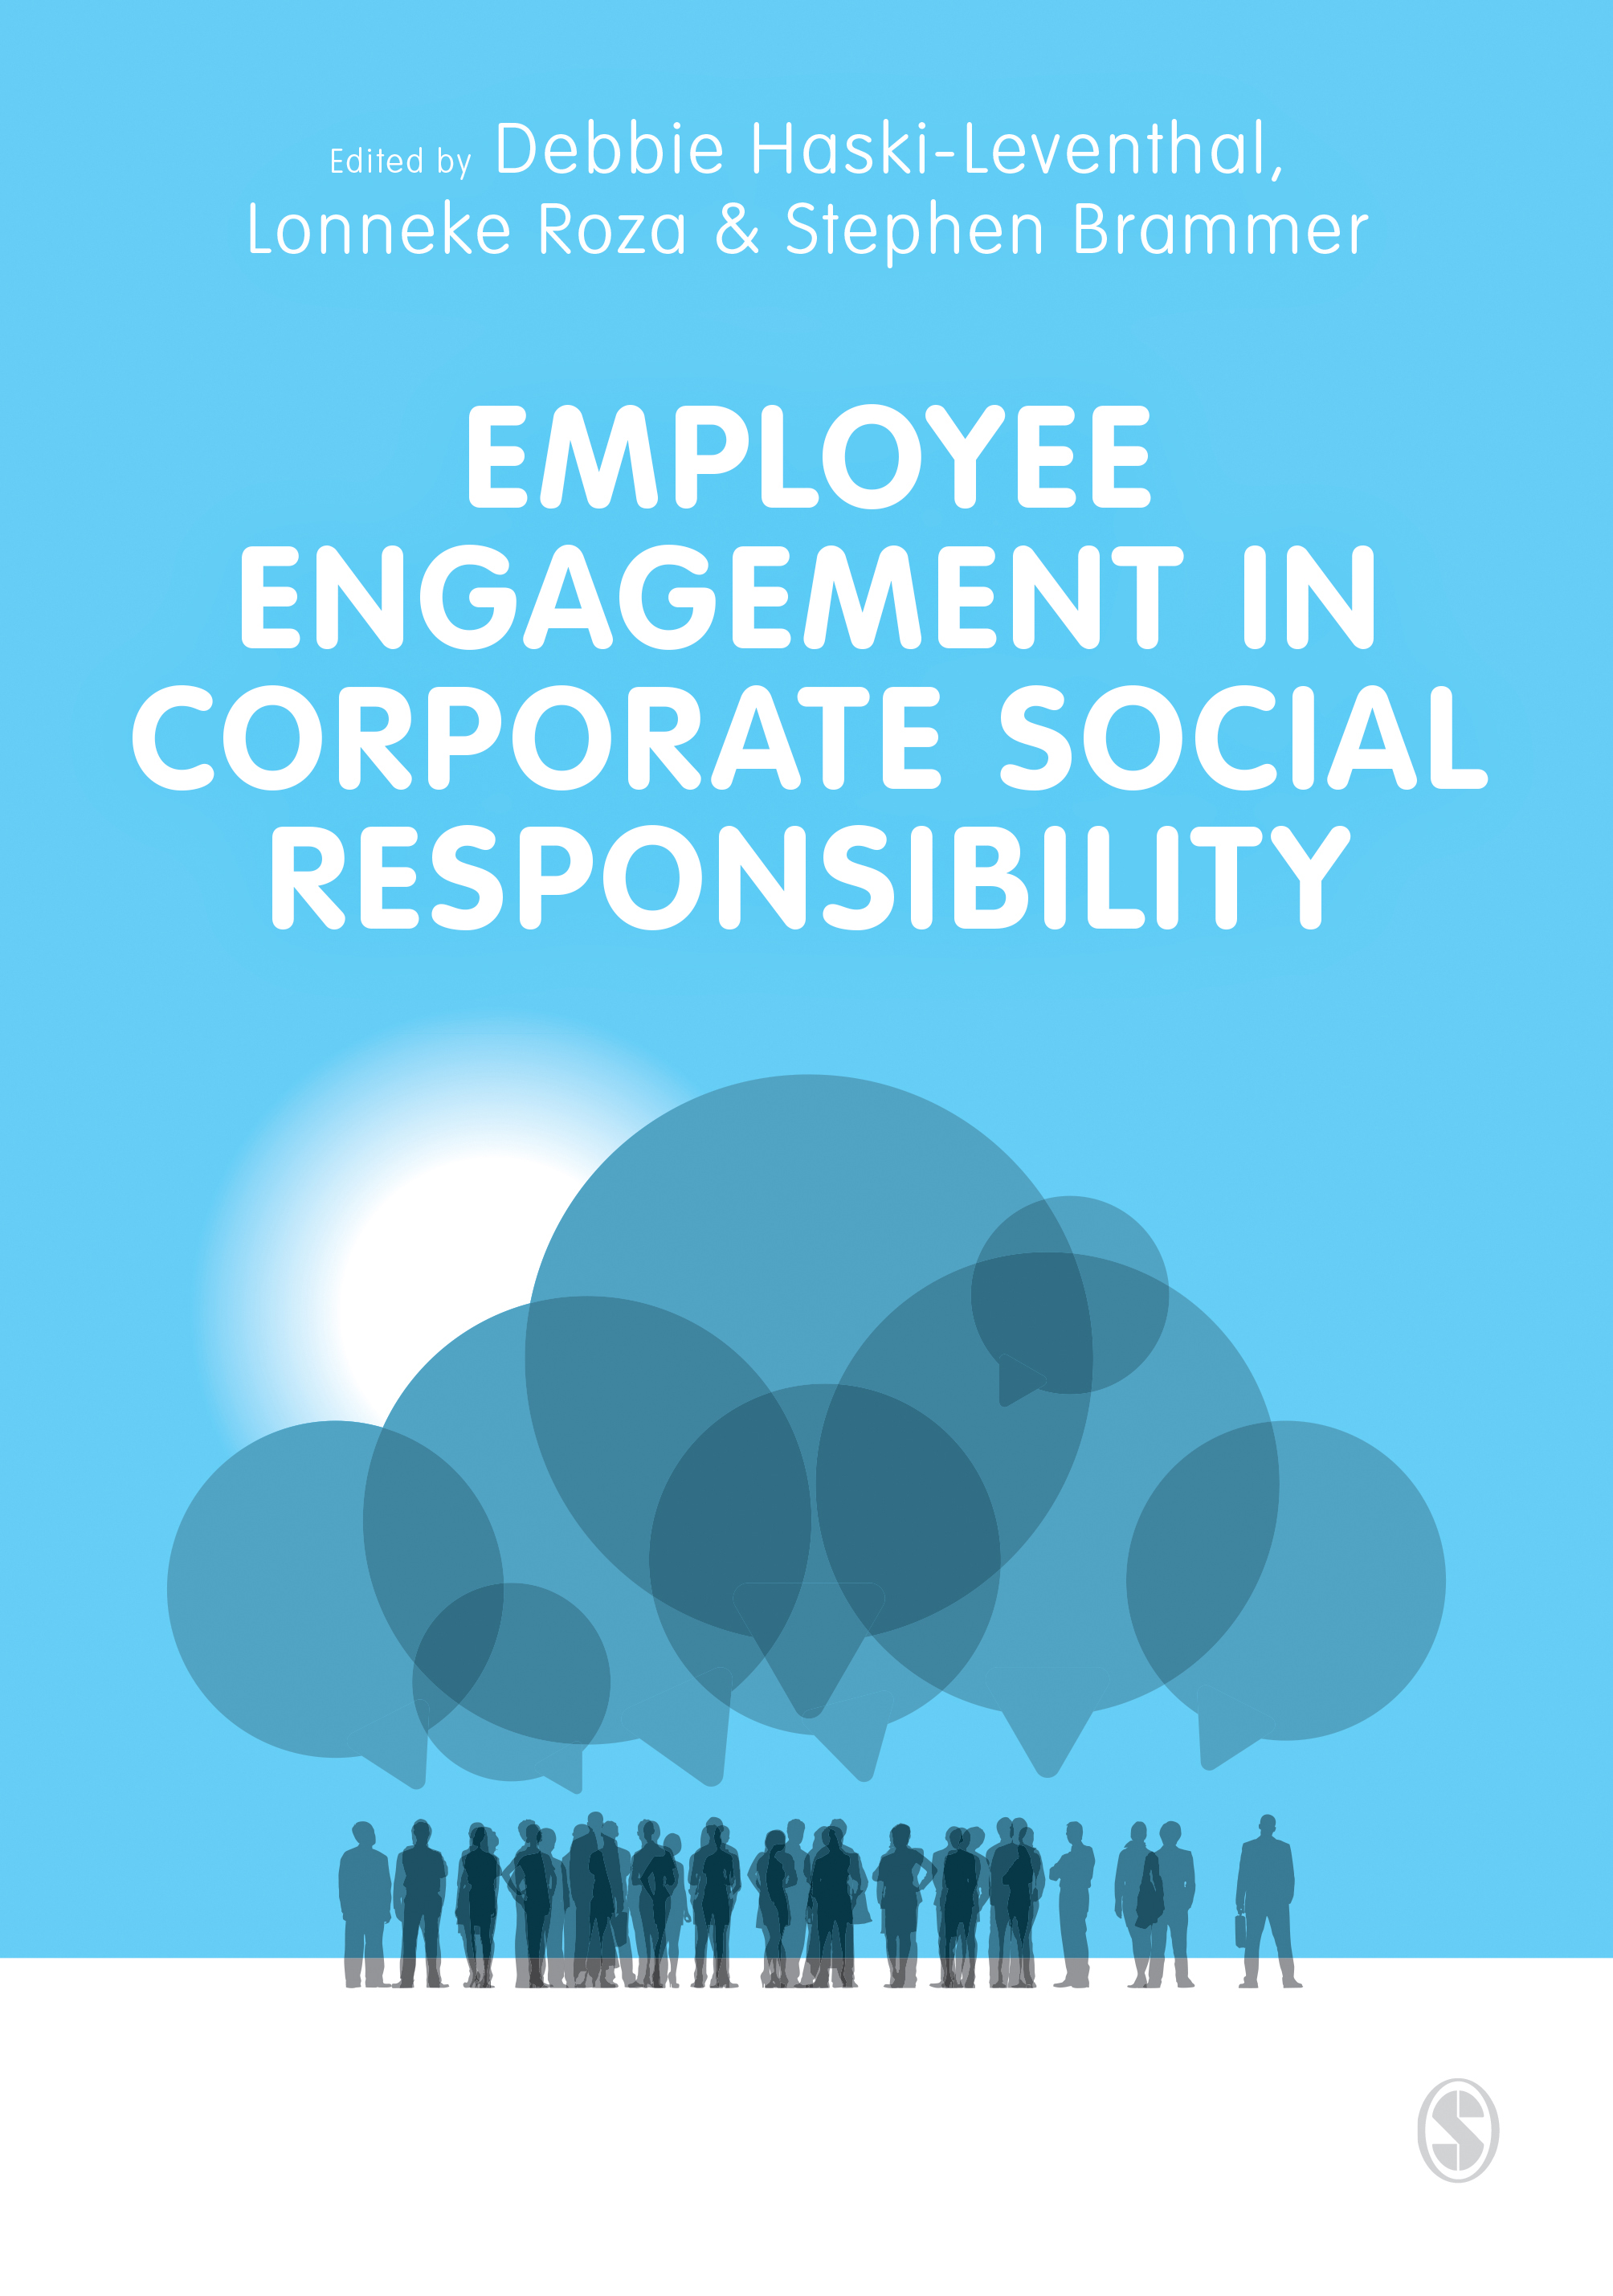 Employee Engagement in Corporate Social Responsibility